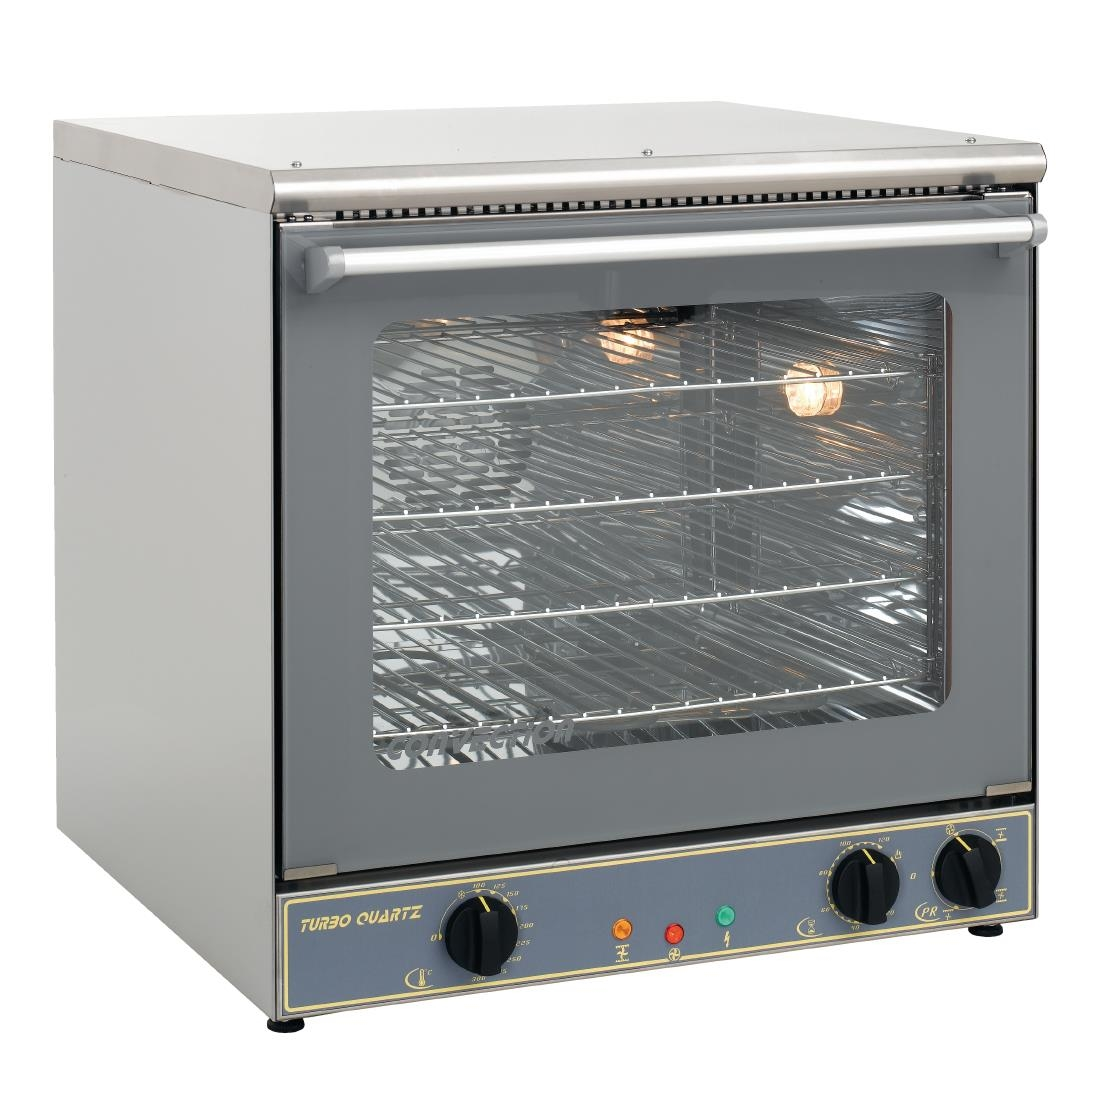 Roller grill turbo quartz convection oven fc60tq gp321 buy roller grill turbo quartz convection oven fc60tq nvjuhfo Image collections